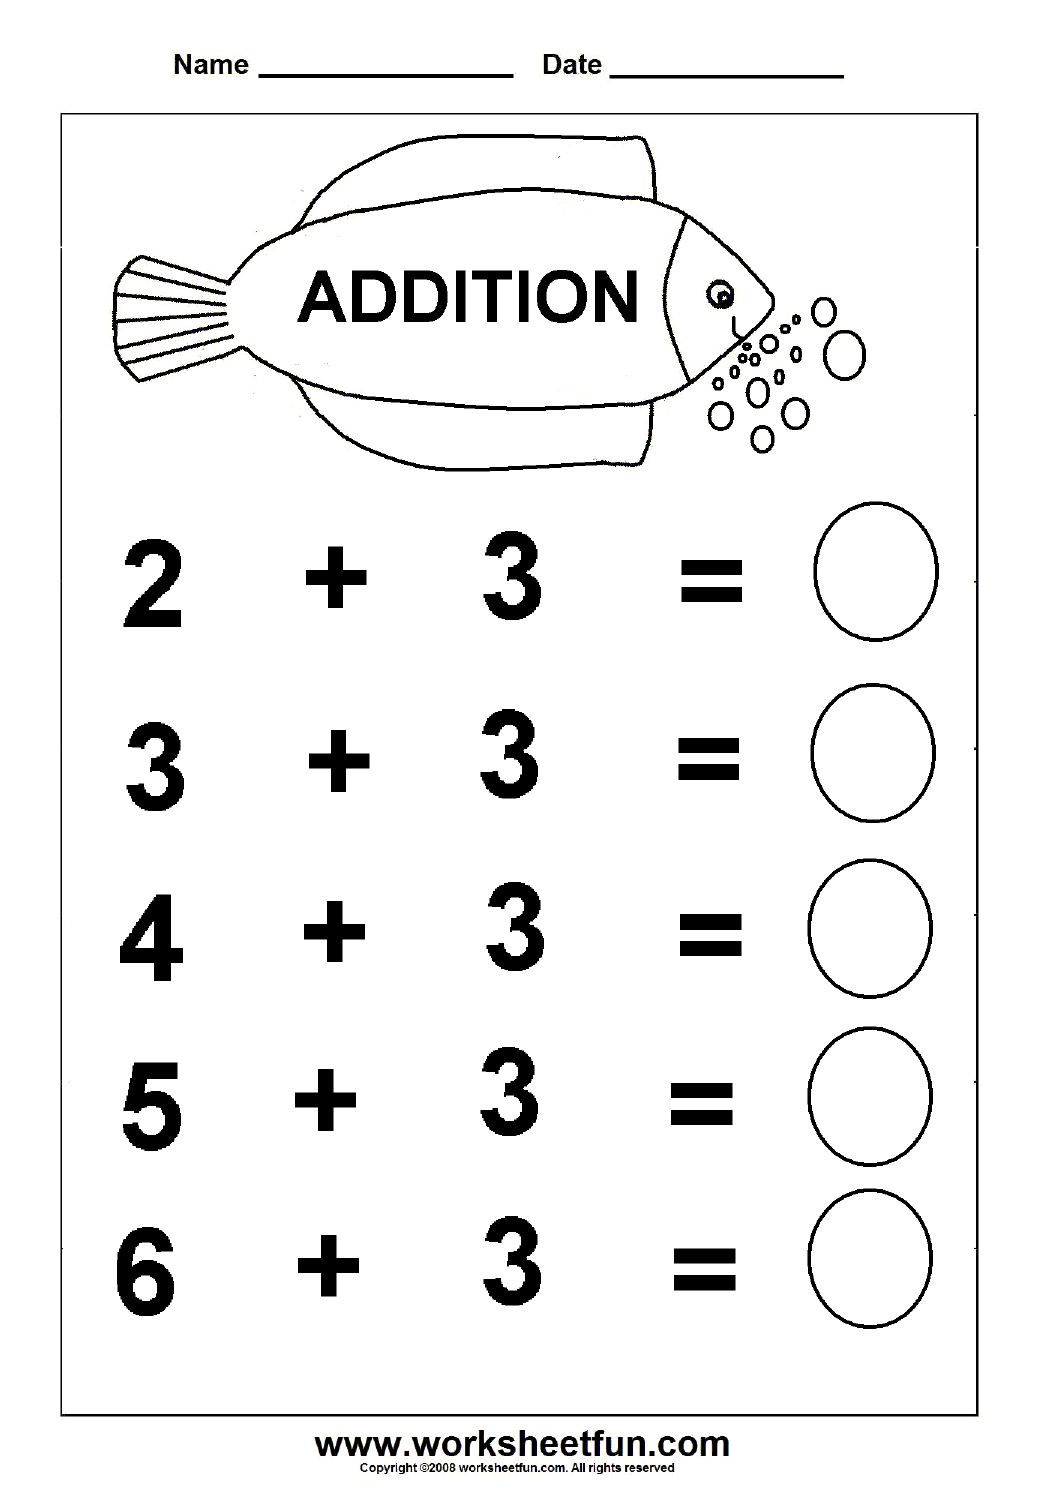 7 Images of Free Printable Preschool Addition Worksheets